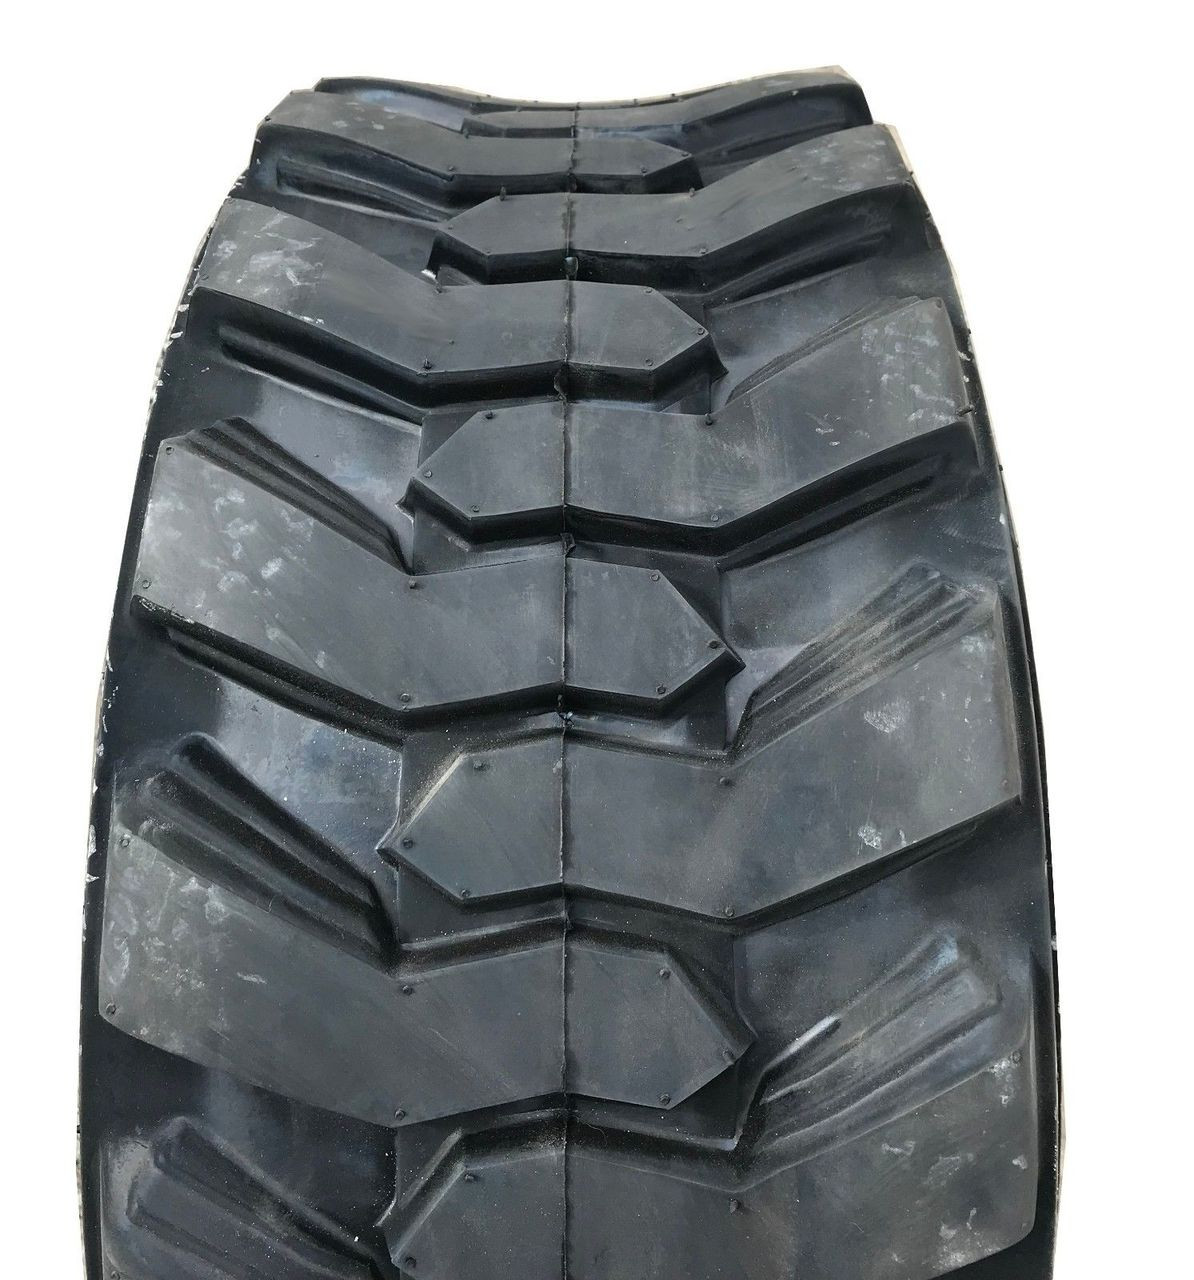 New Tire 12 16.5 Loadmaxx 12 Ply TL Skid Steer Loader 12x16.5 Rim Guard G1